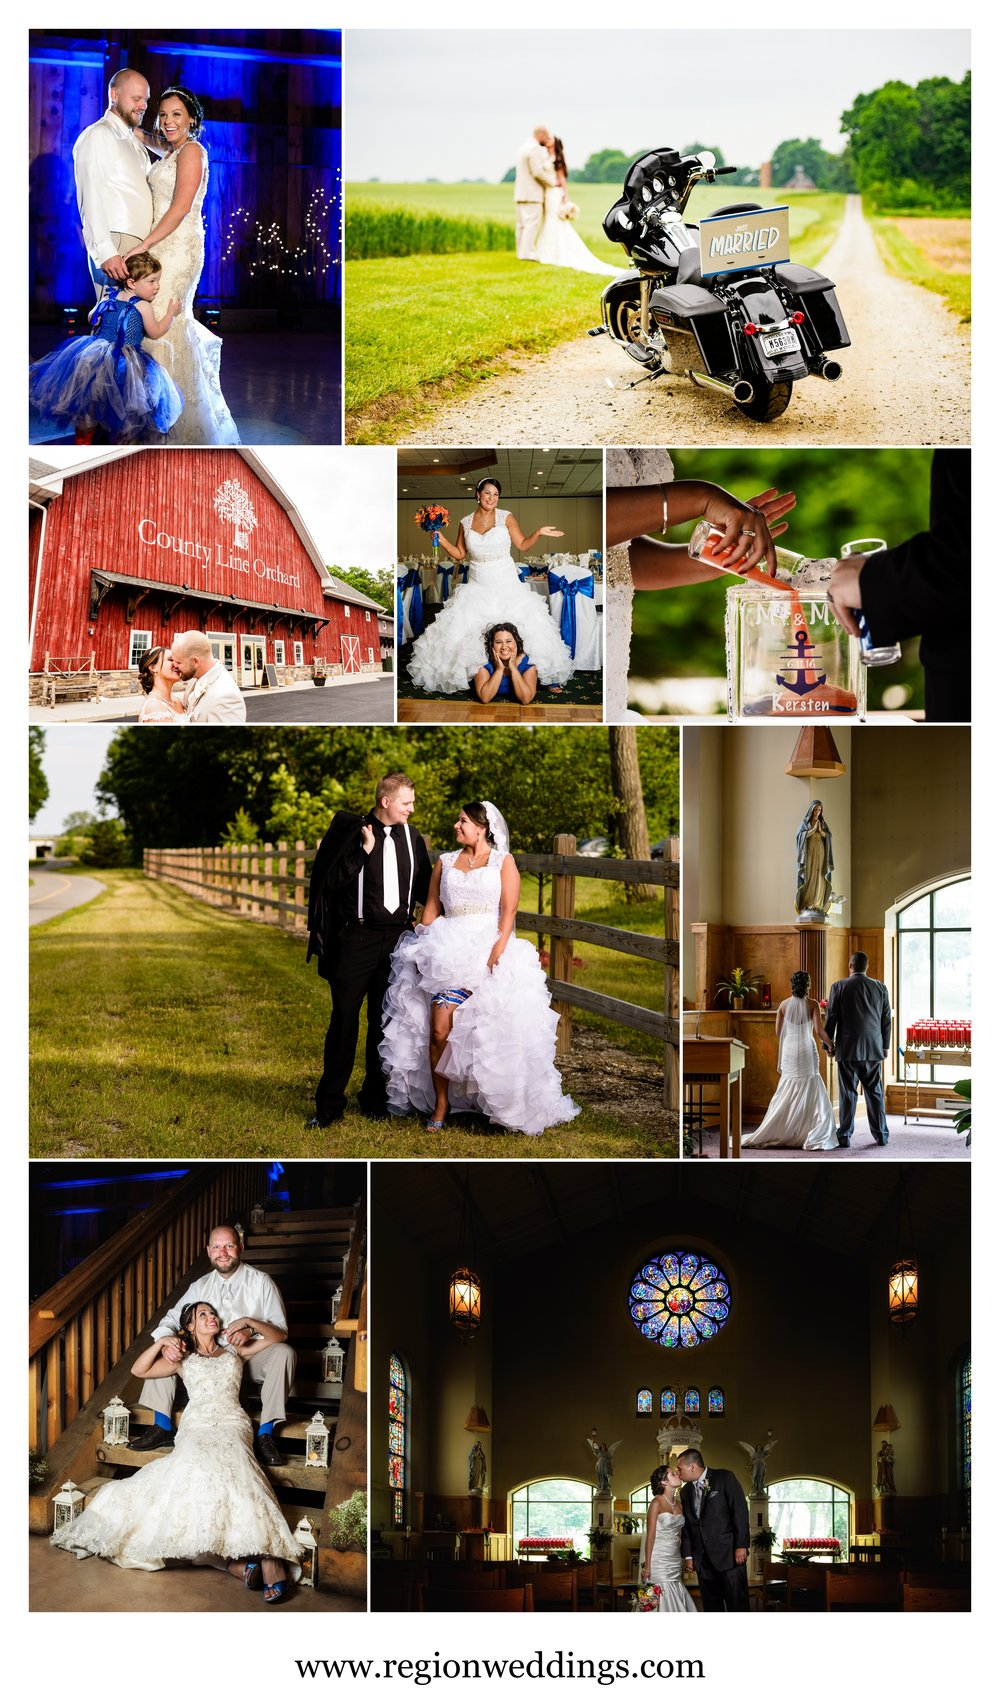 Summer wedding photos in Northwest Indiana in 2016.